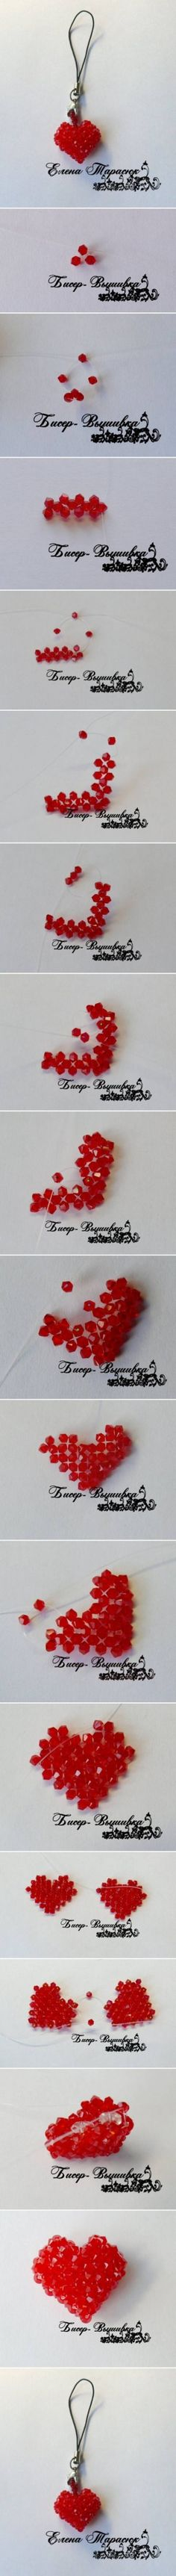 How to make beads or pearl Heart Ornament step by step DIY tutorial instructions, How to, how to do, diy instructions, crafts, do it yoursel by Mary Smith fSesz